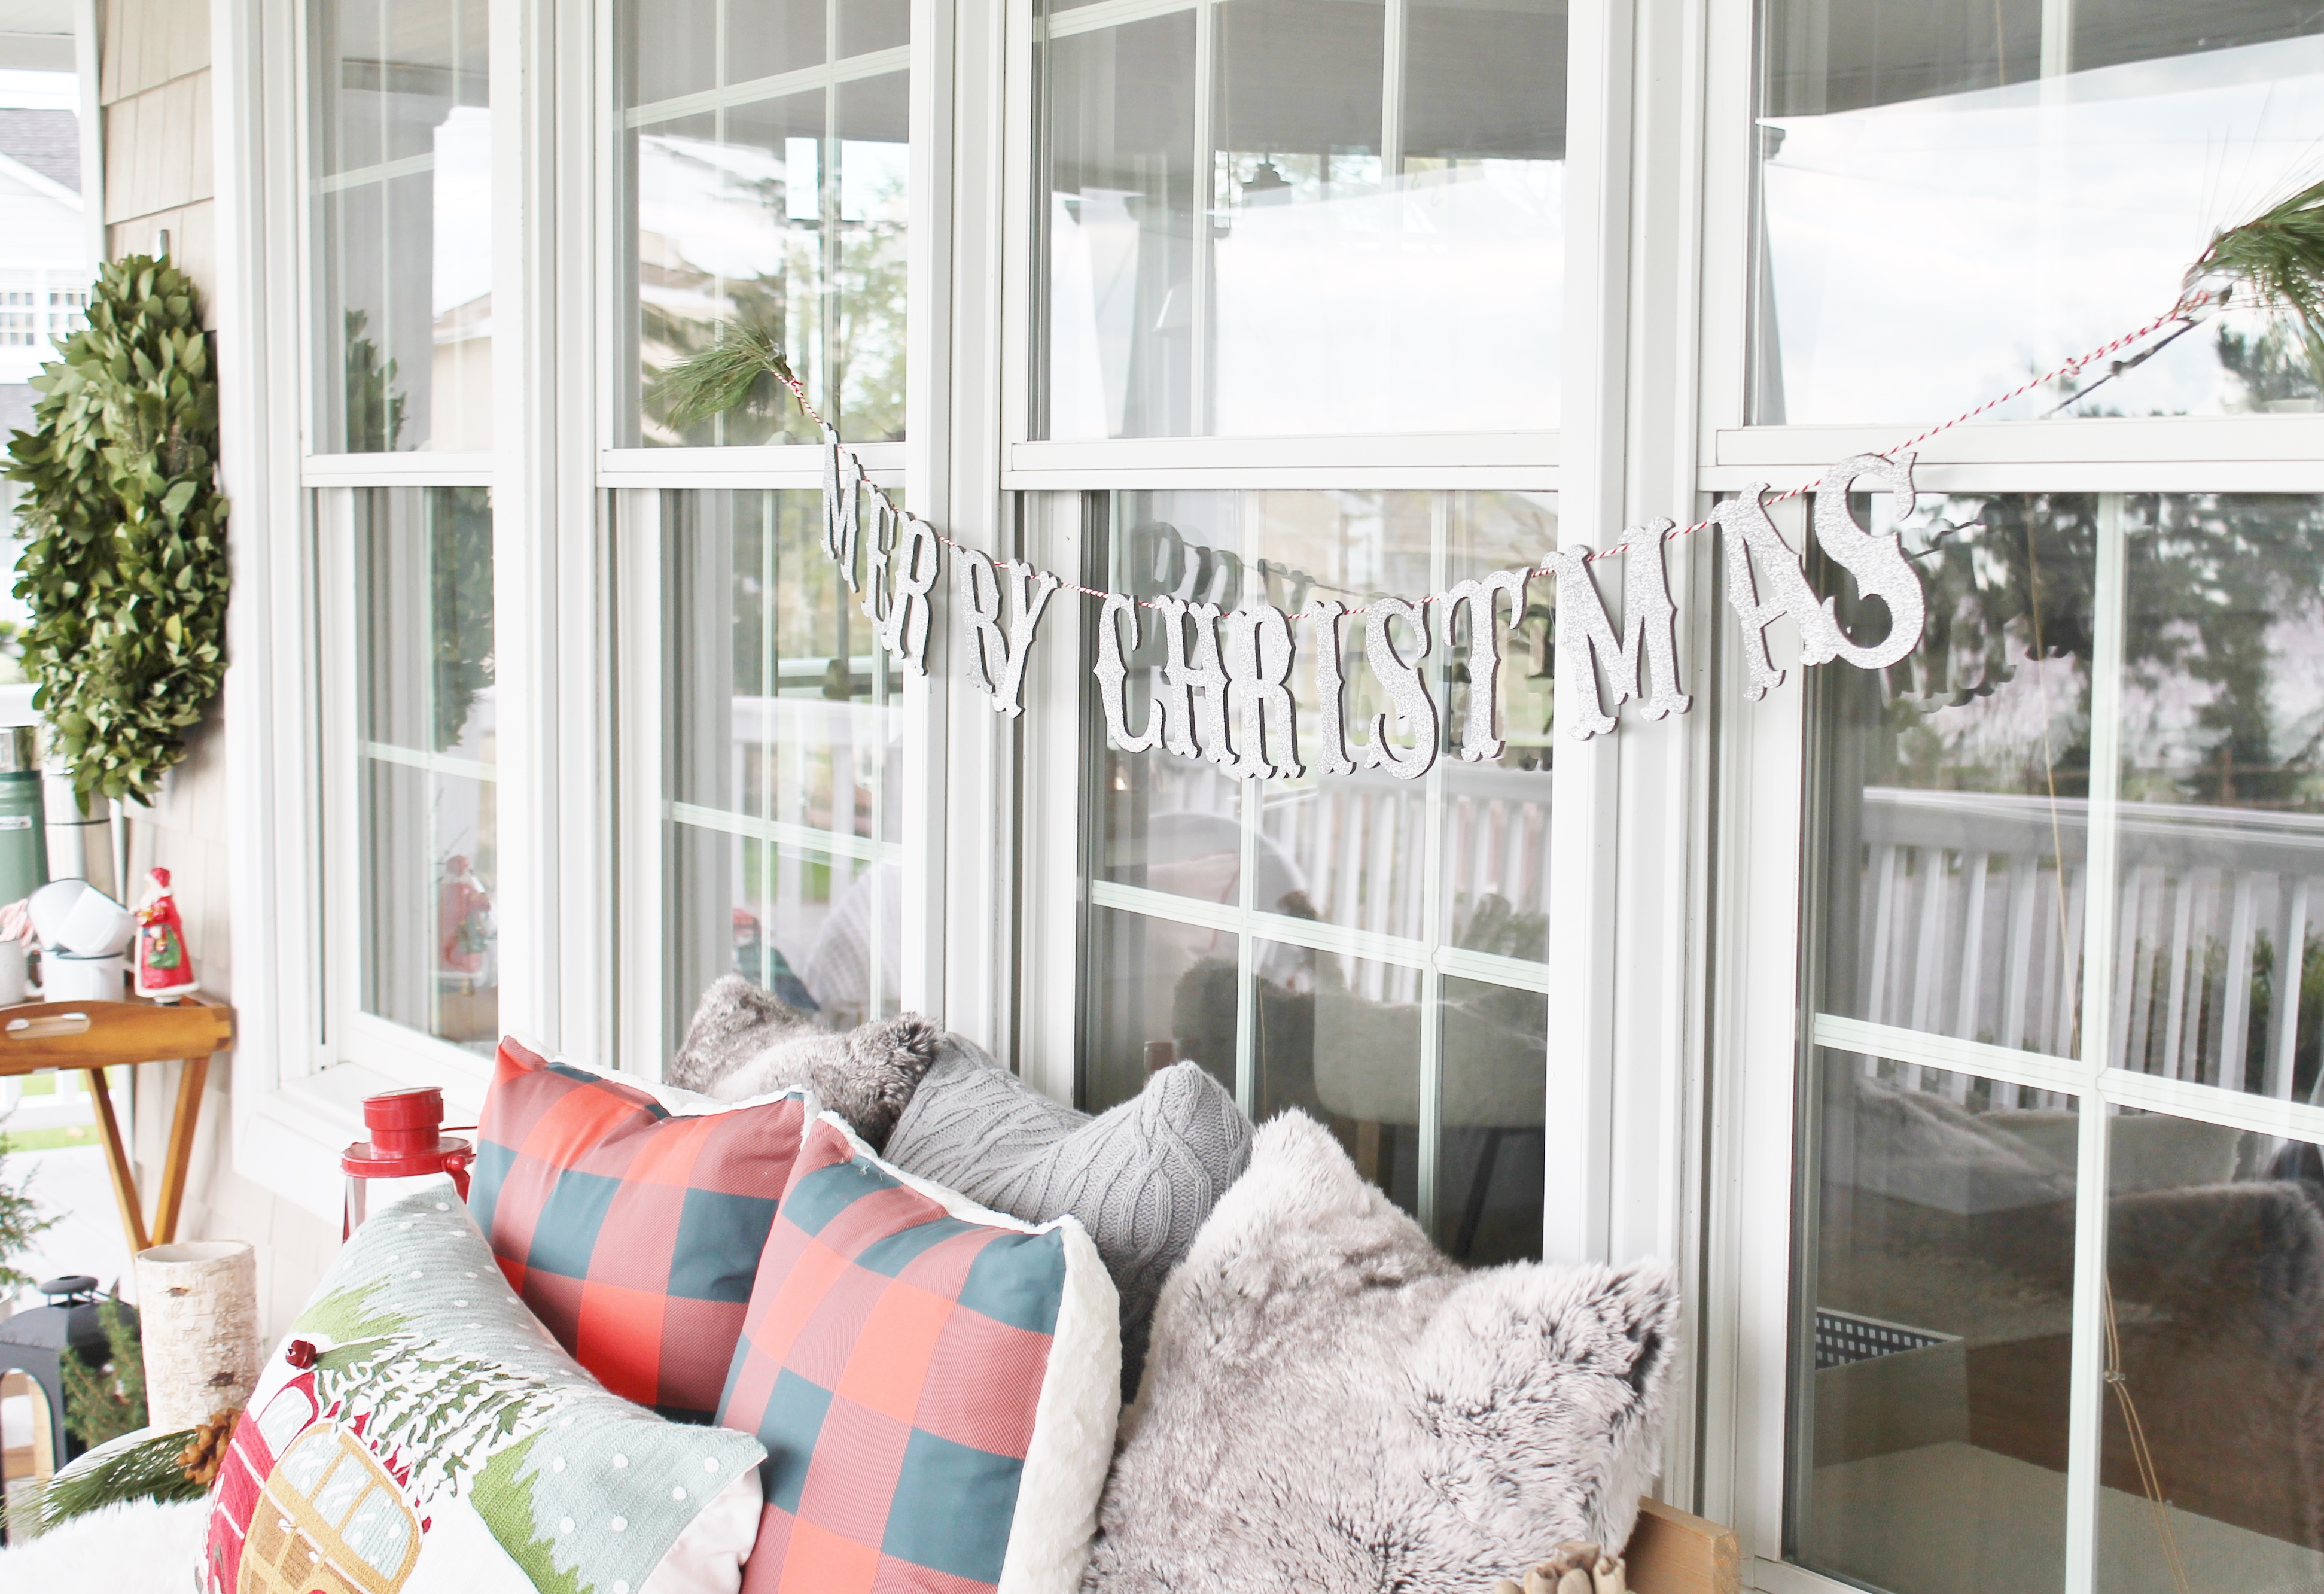 Simple Tips For Outdoor Decorating - City Farmhouse